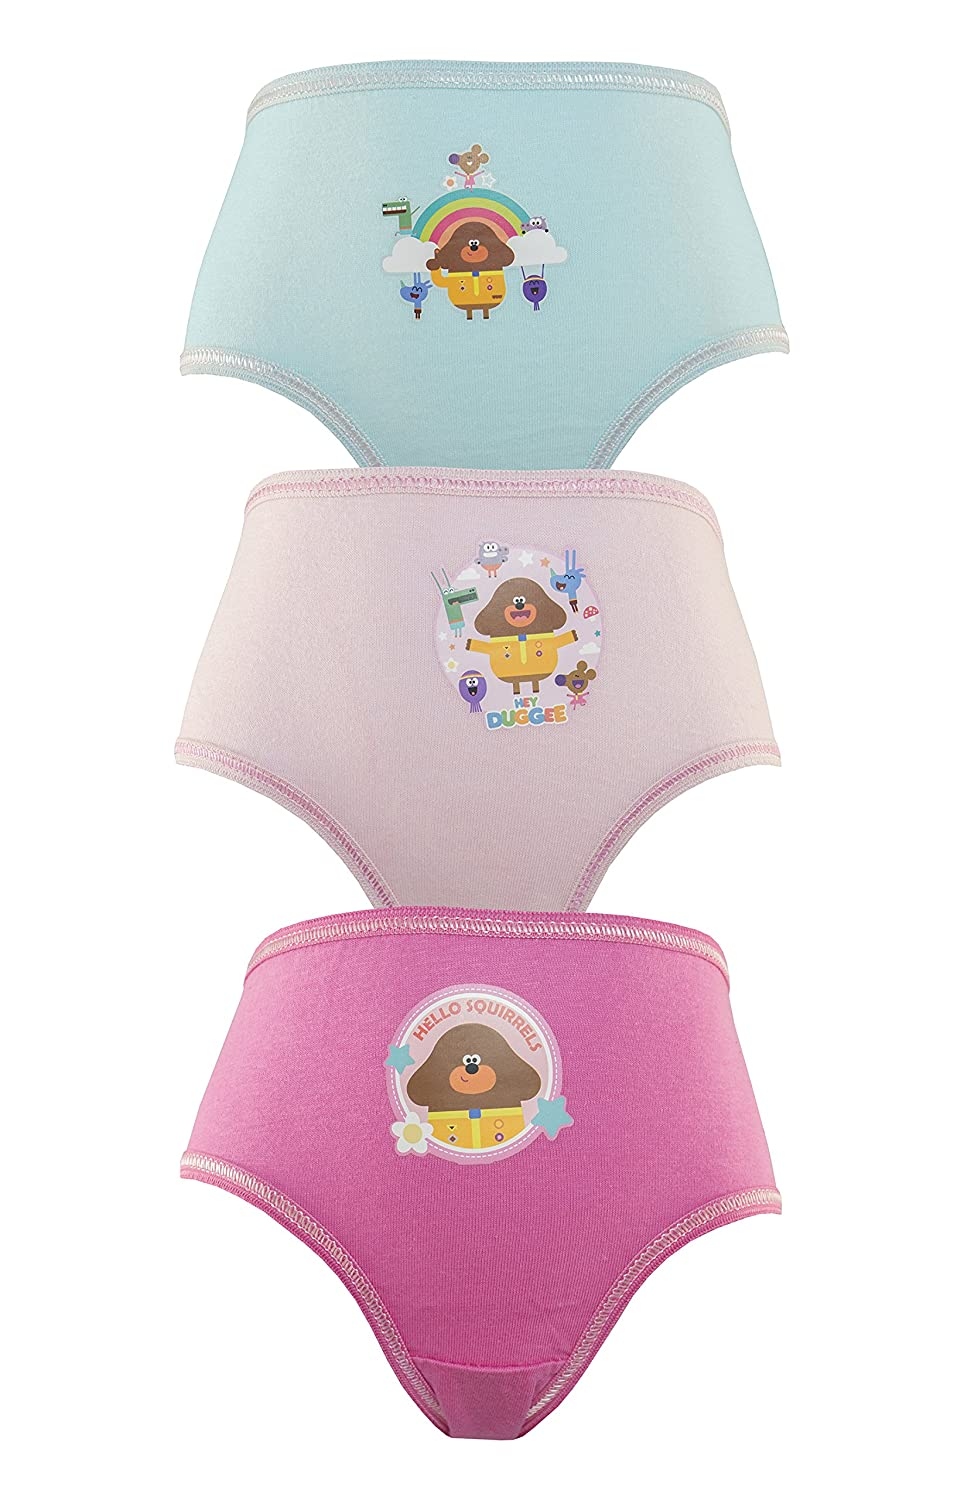 Cartoon Character Products CBeebies Hey Duggee Girls Pants/Knickers Various Designs 18months - 5 Years